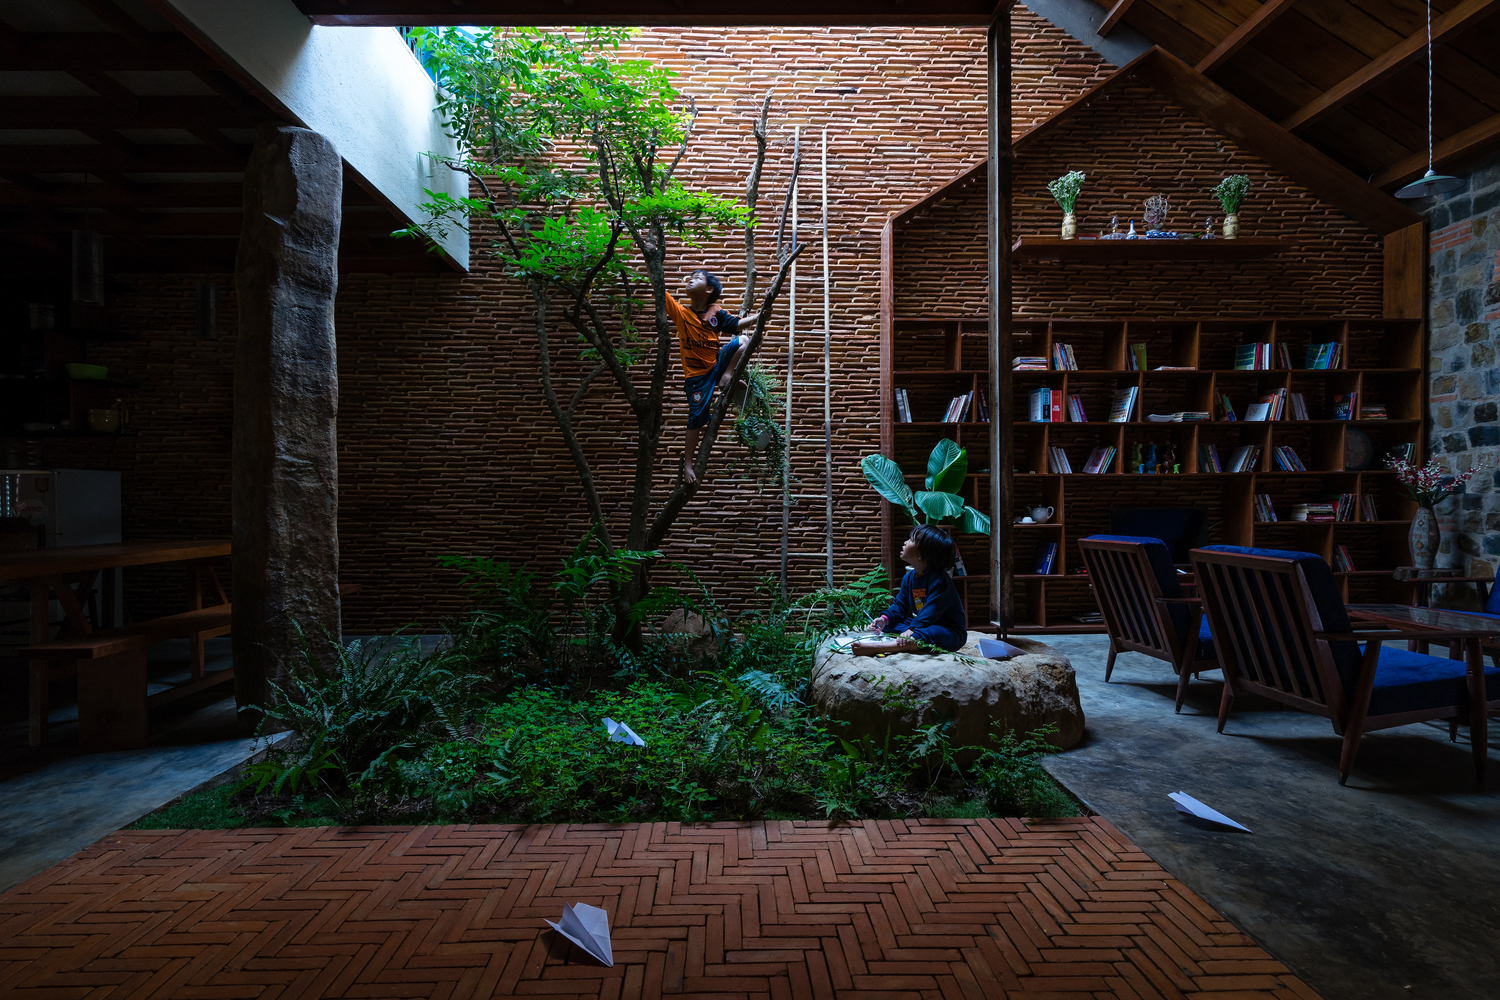 treehouse design interiordesign vietnamese homedesign